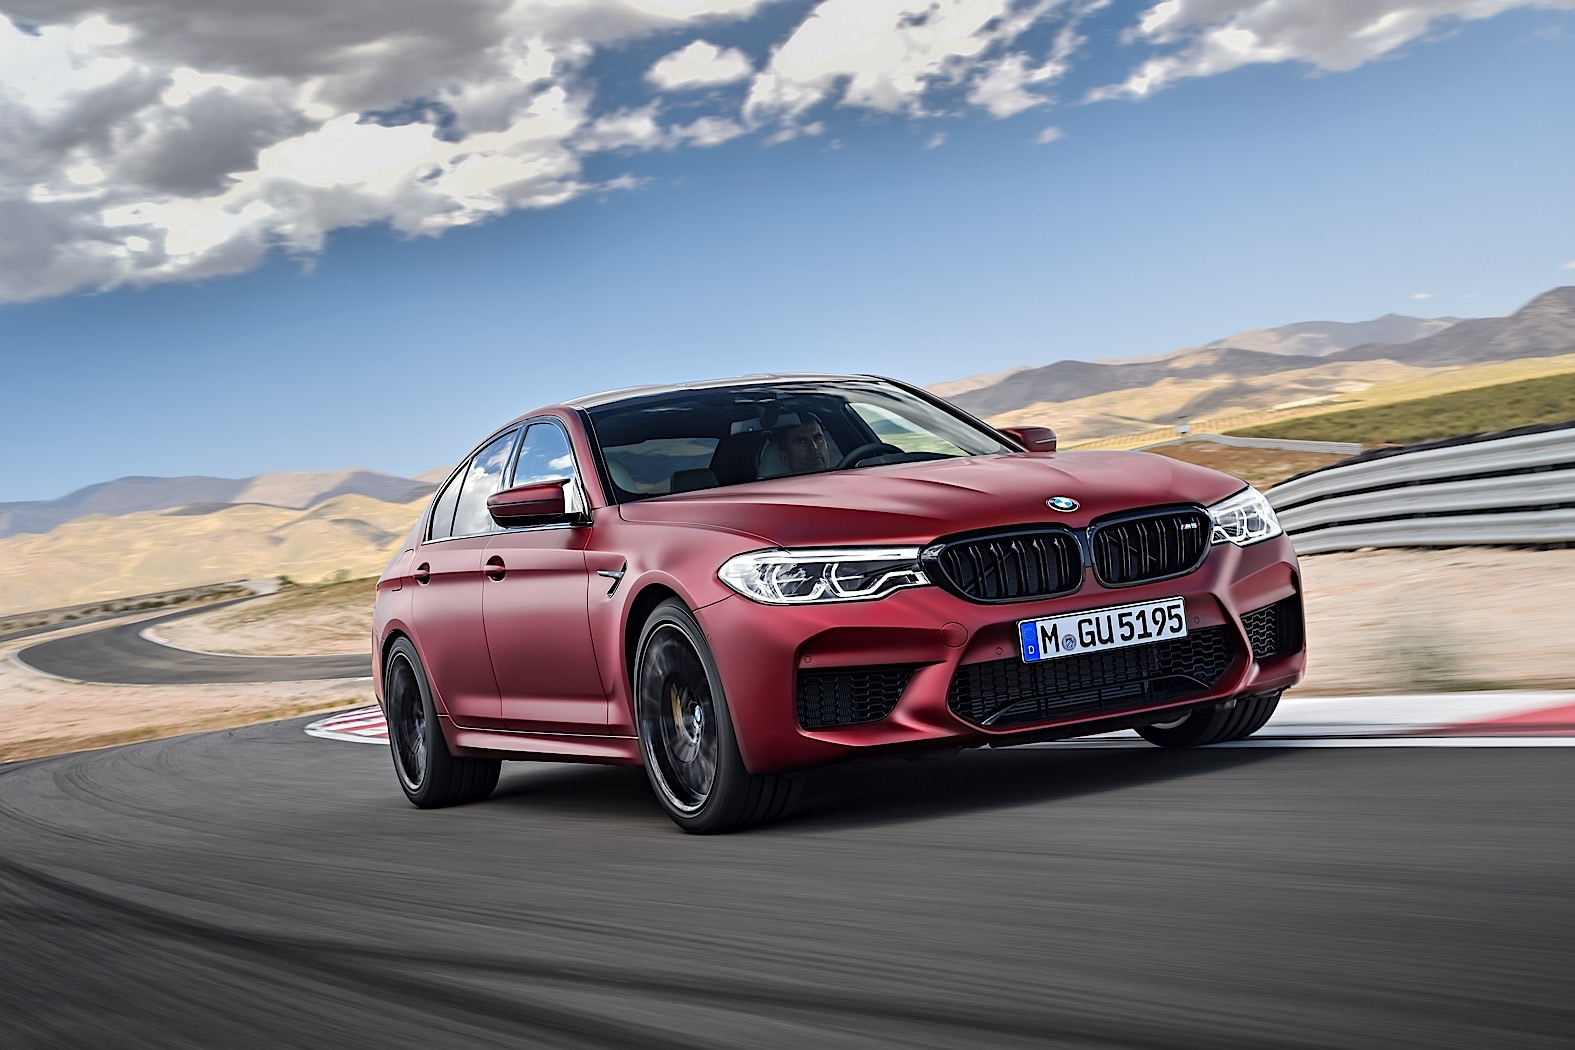 BMW M5 officially revealed